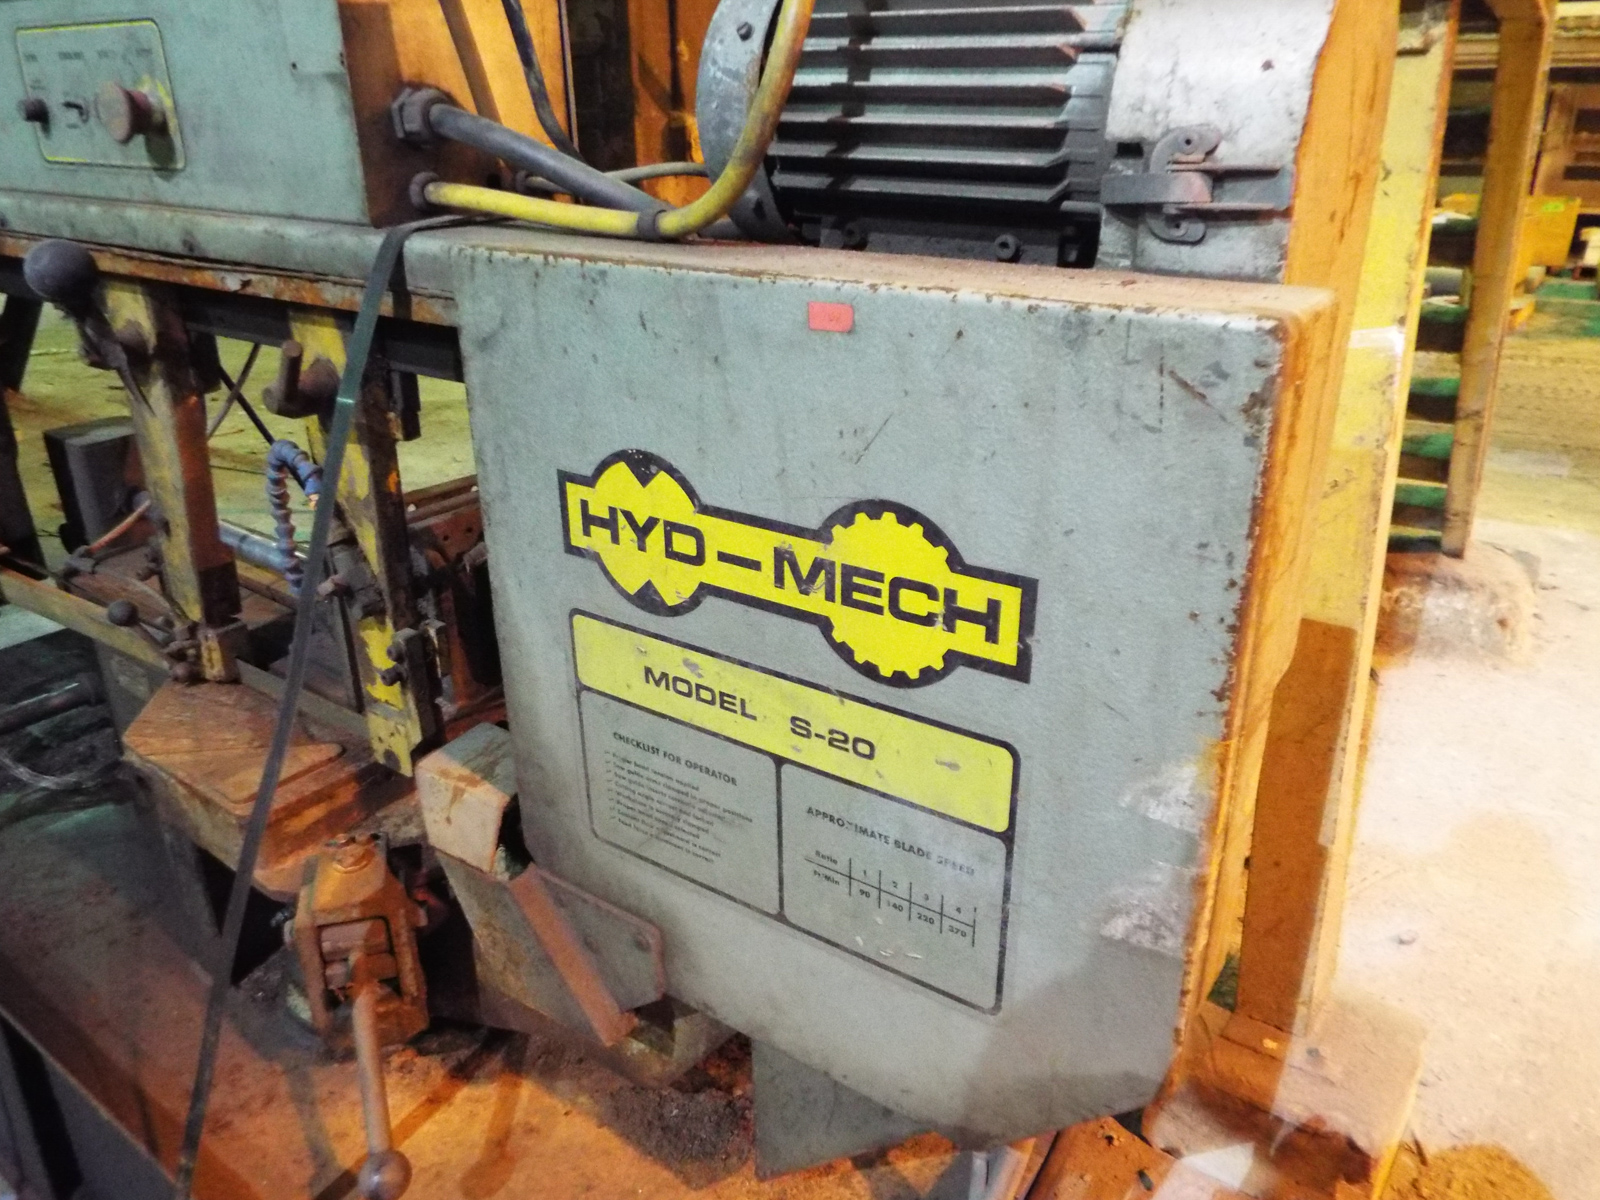 """HYD-MECH S-20 AUTOMATIC HORIZONTAL BAND SAW WITH 13""""X18"""" CAPACITY, 370 RPM, 2 HP, VARIABLE FEED - Image 5 of 7"""